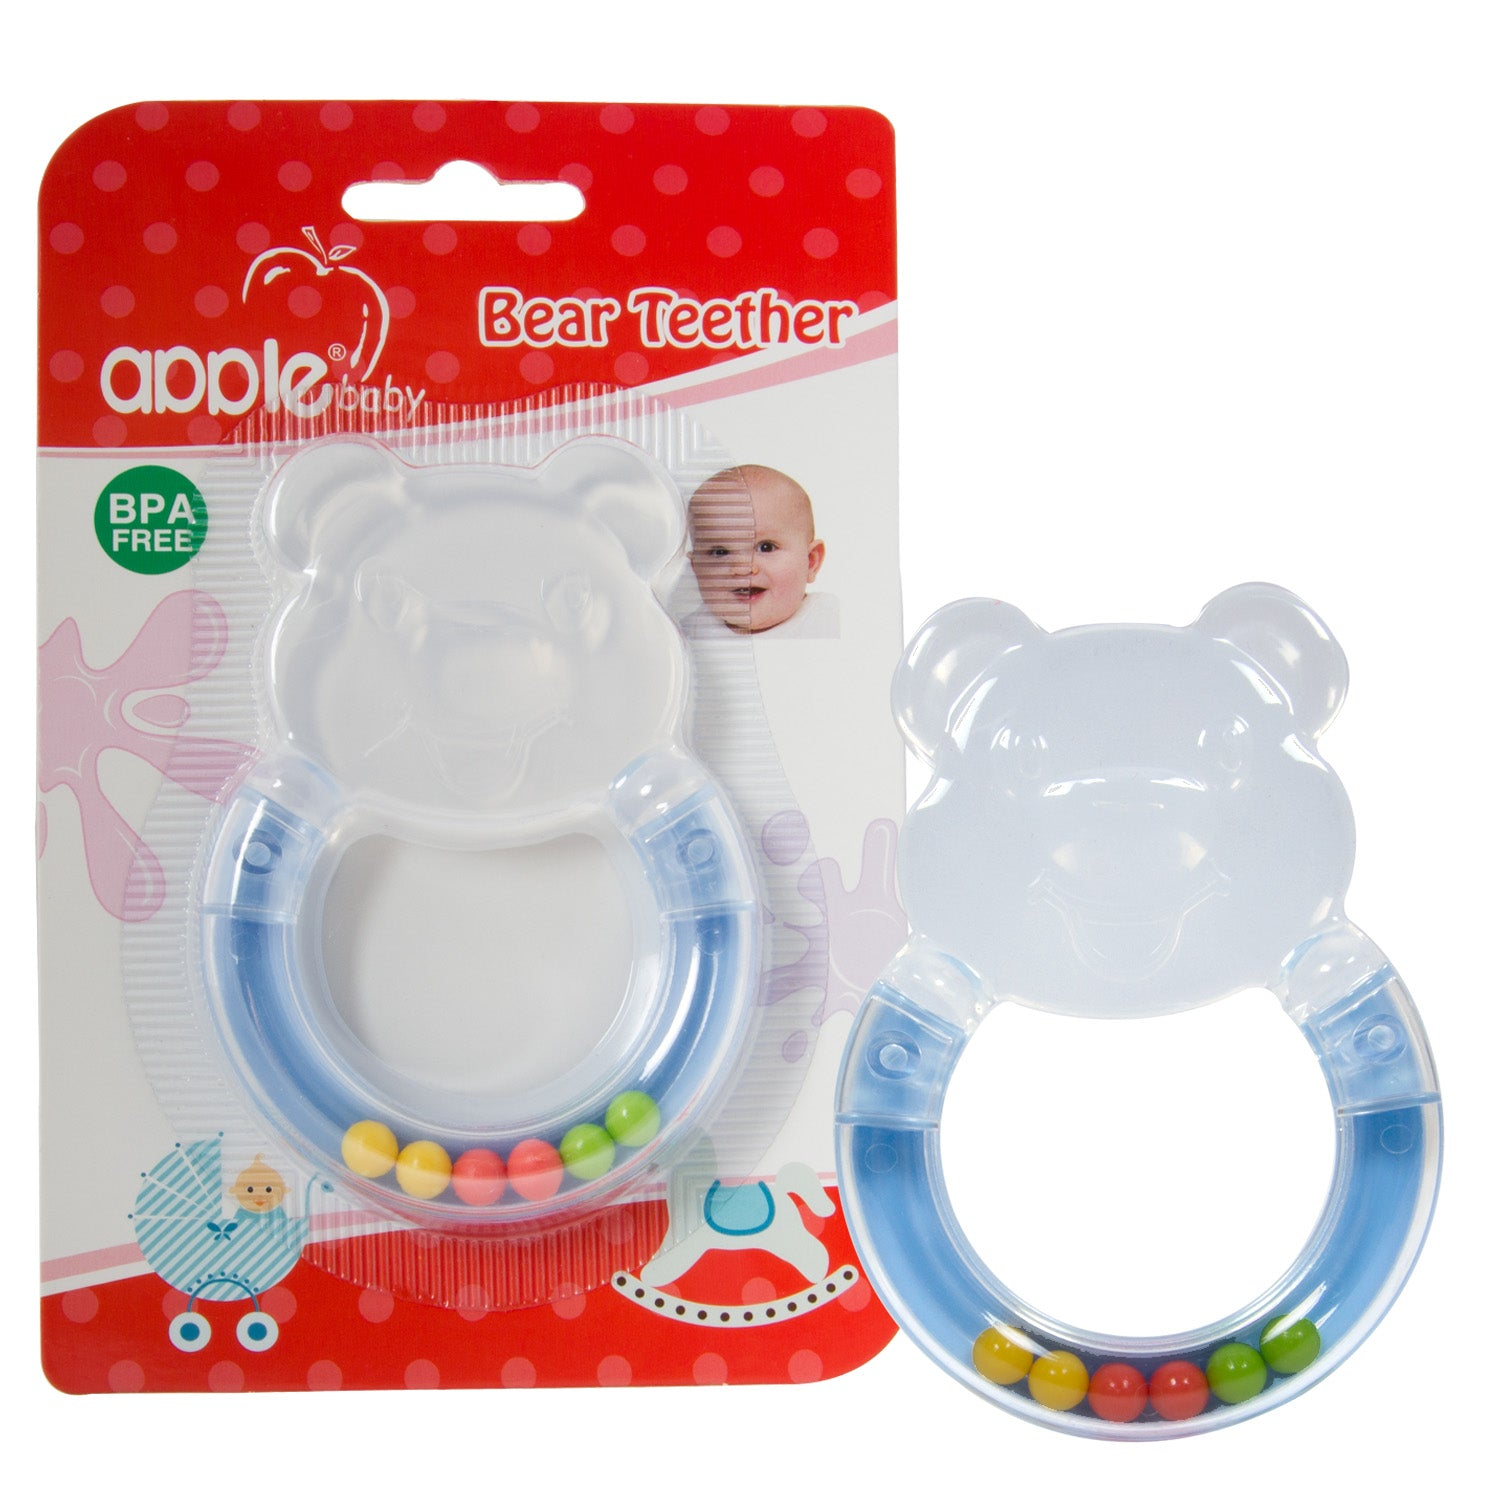 AppleBaby Bear Teether Blue get best offers deals free and coupons online at buythevalue.in